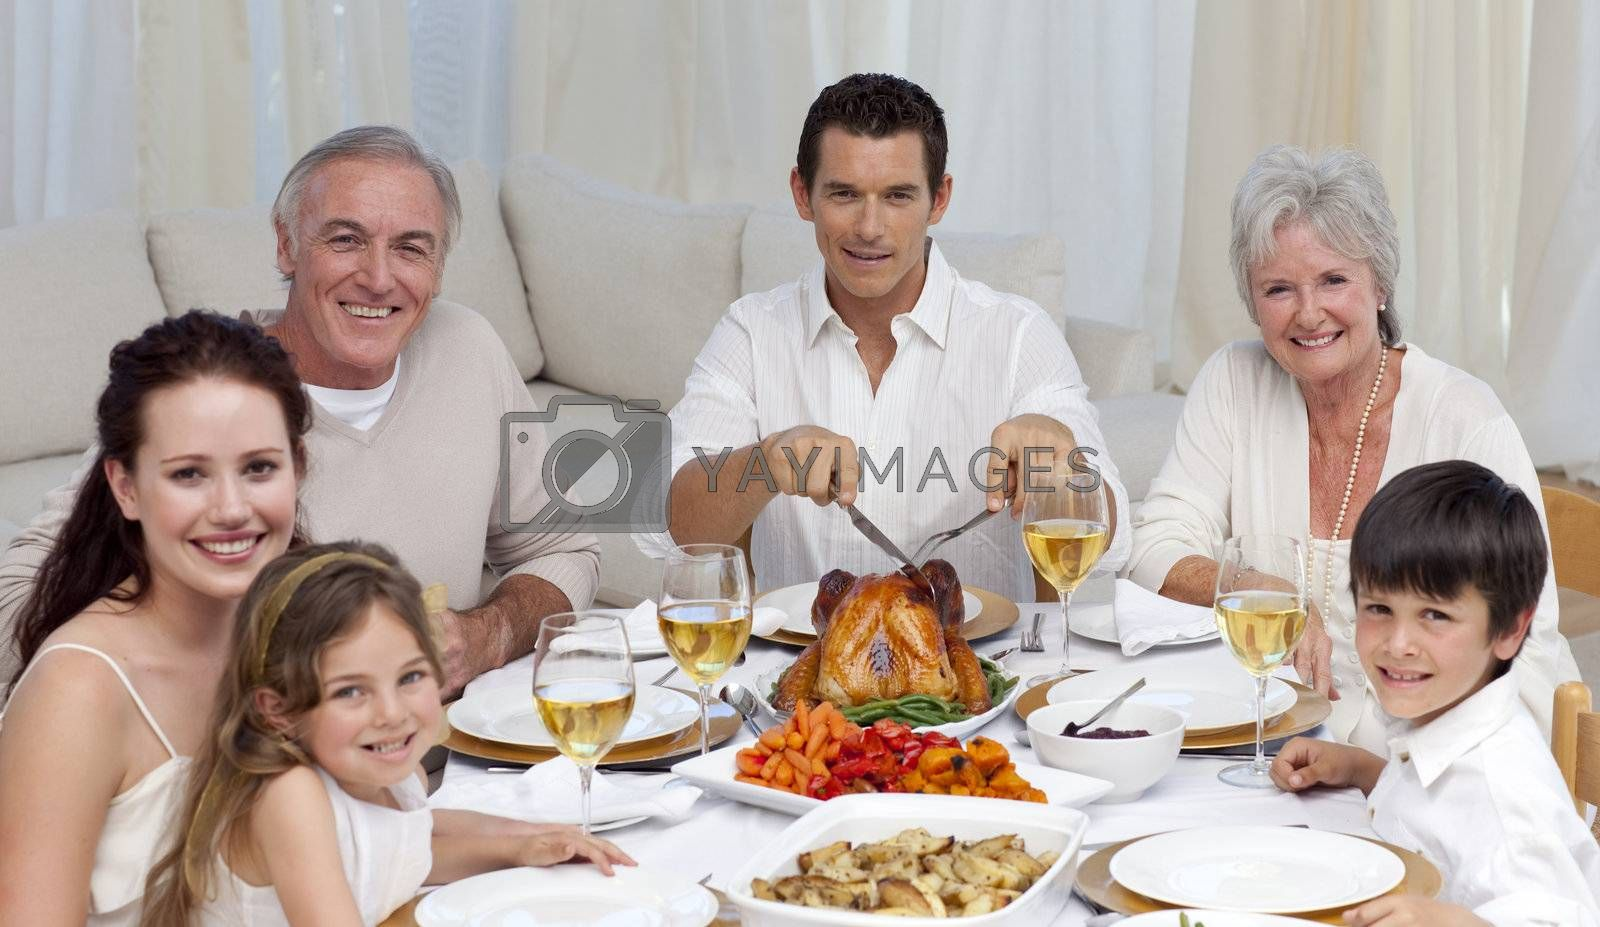 Family eating turkey and vegetables in a celebration meal at home